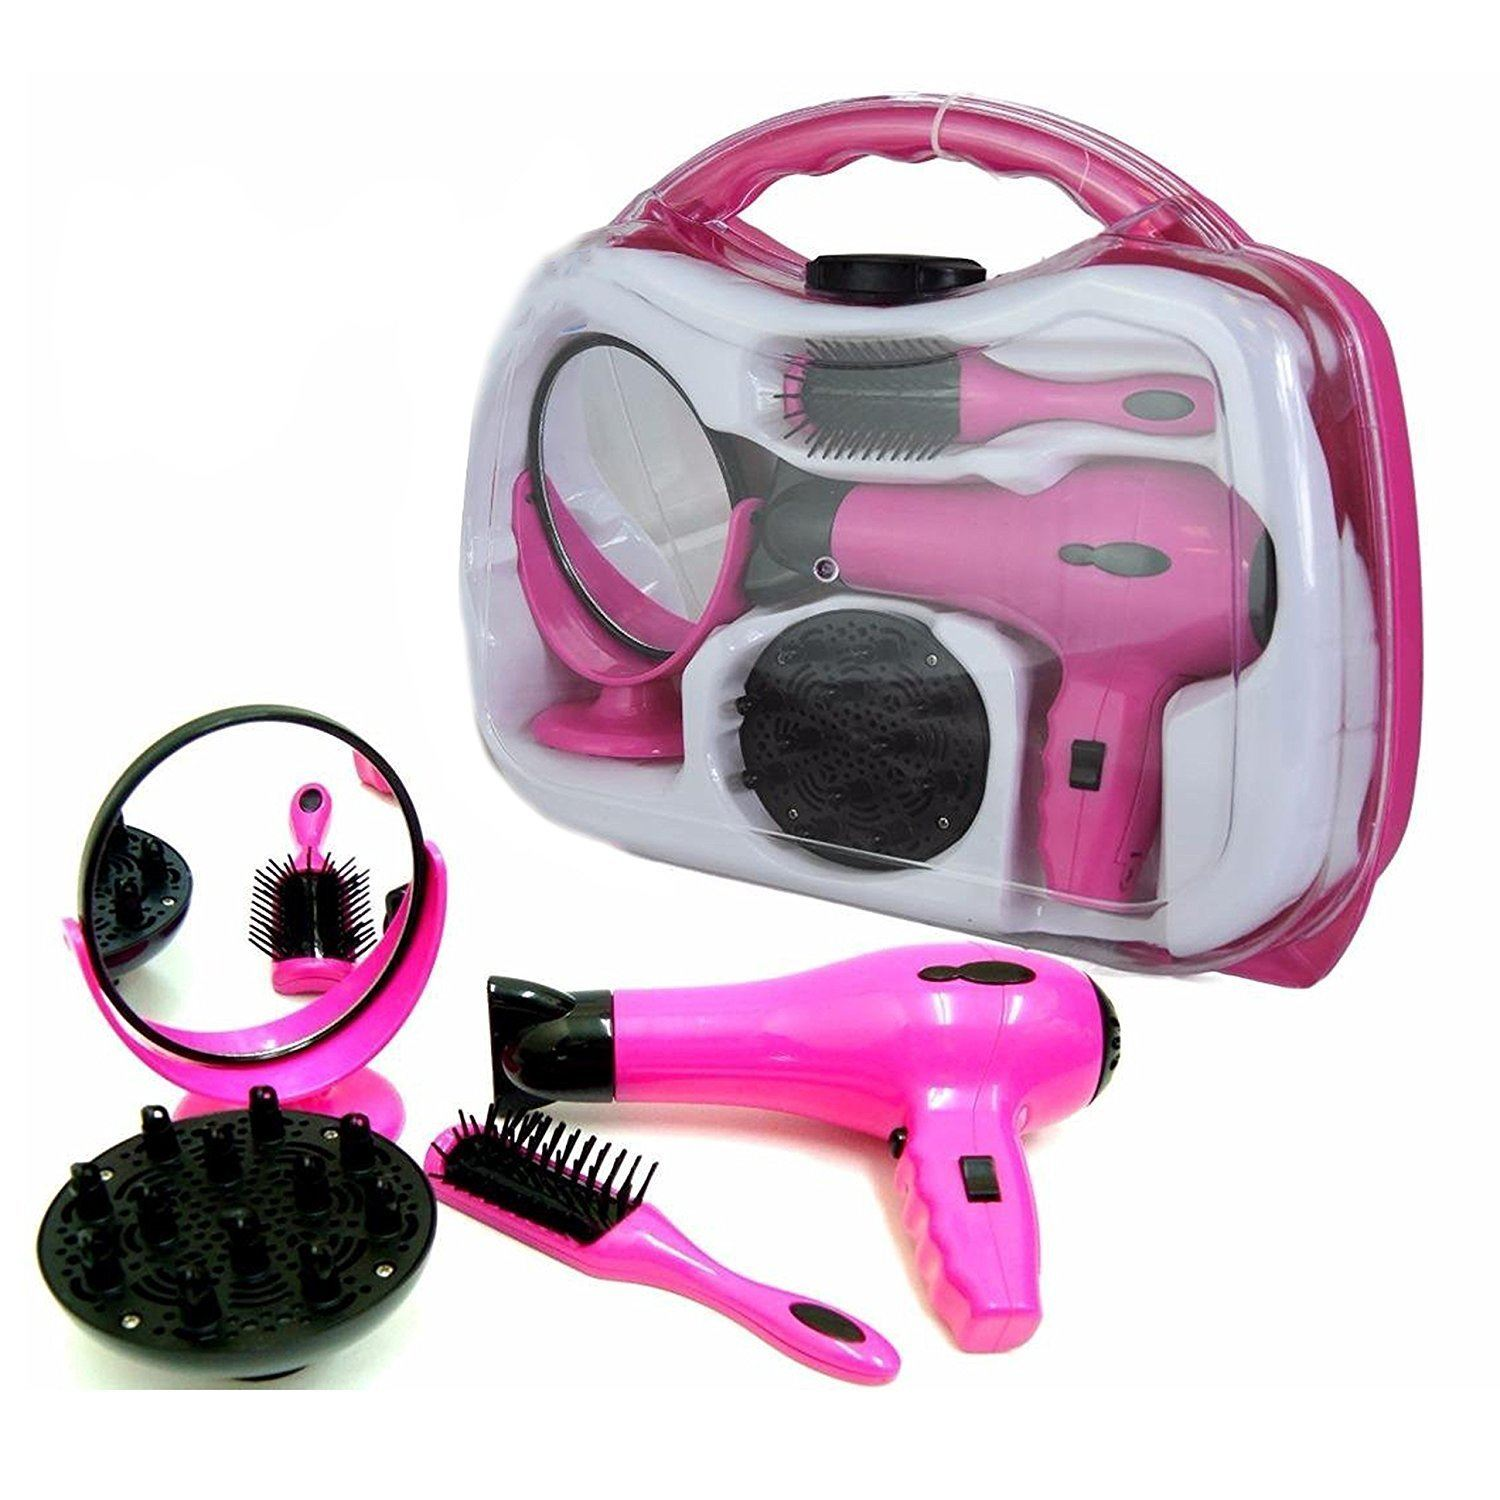 Battery Operated Dryer ~ Battery operated girls hair dryer toy play set in carry